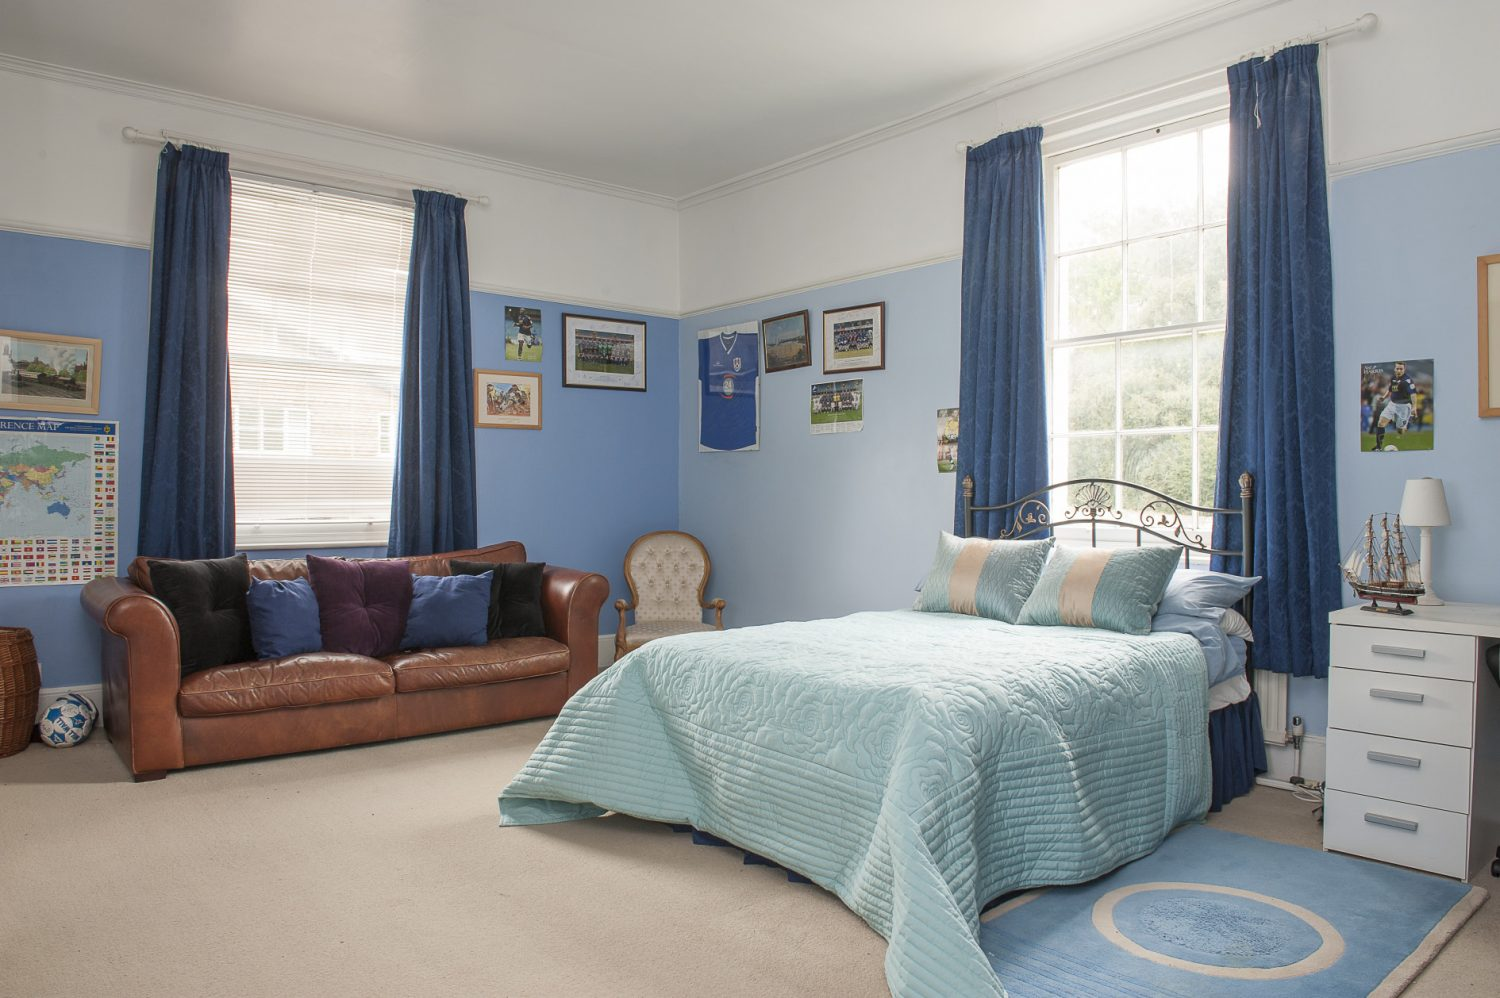 Dawn's younger son's bedroom had been converted into a small room and a corridor, so she decided to return it to its original size. It is now a spacious retreat with wallspace reserved as a homage to Millwall FC